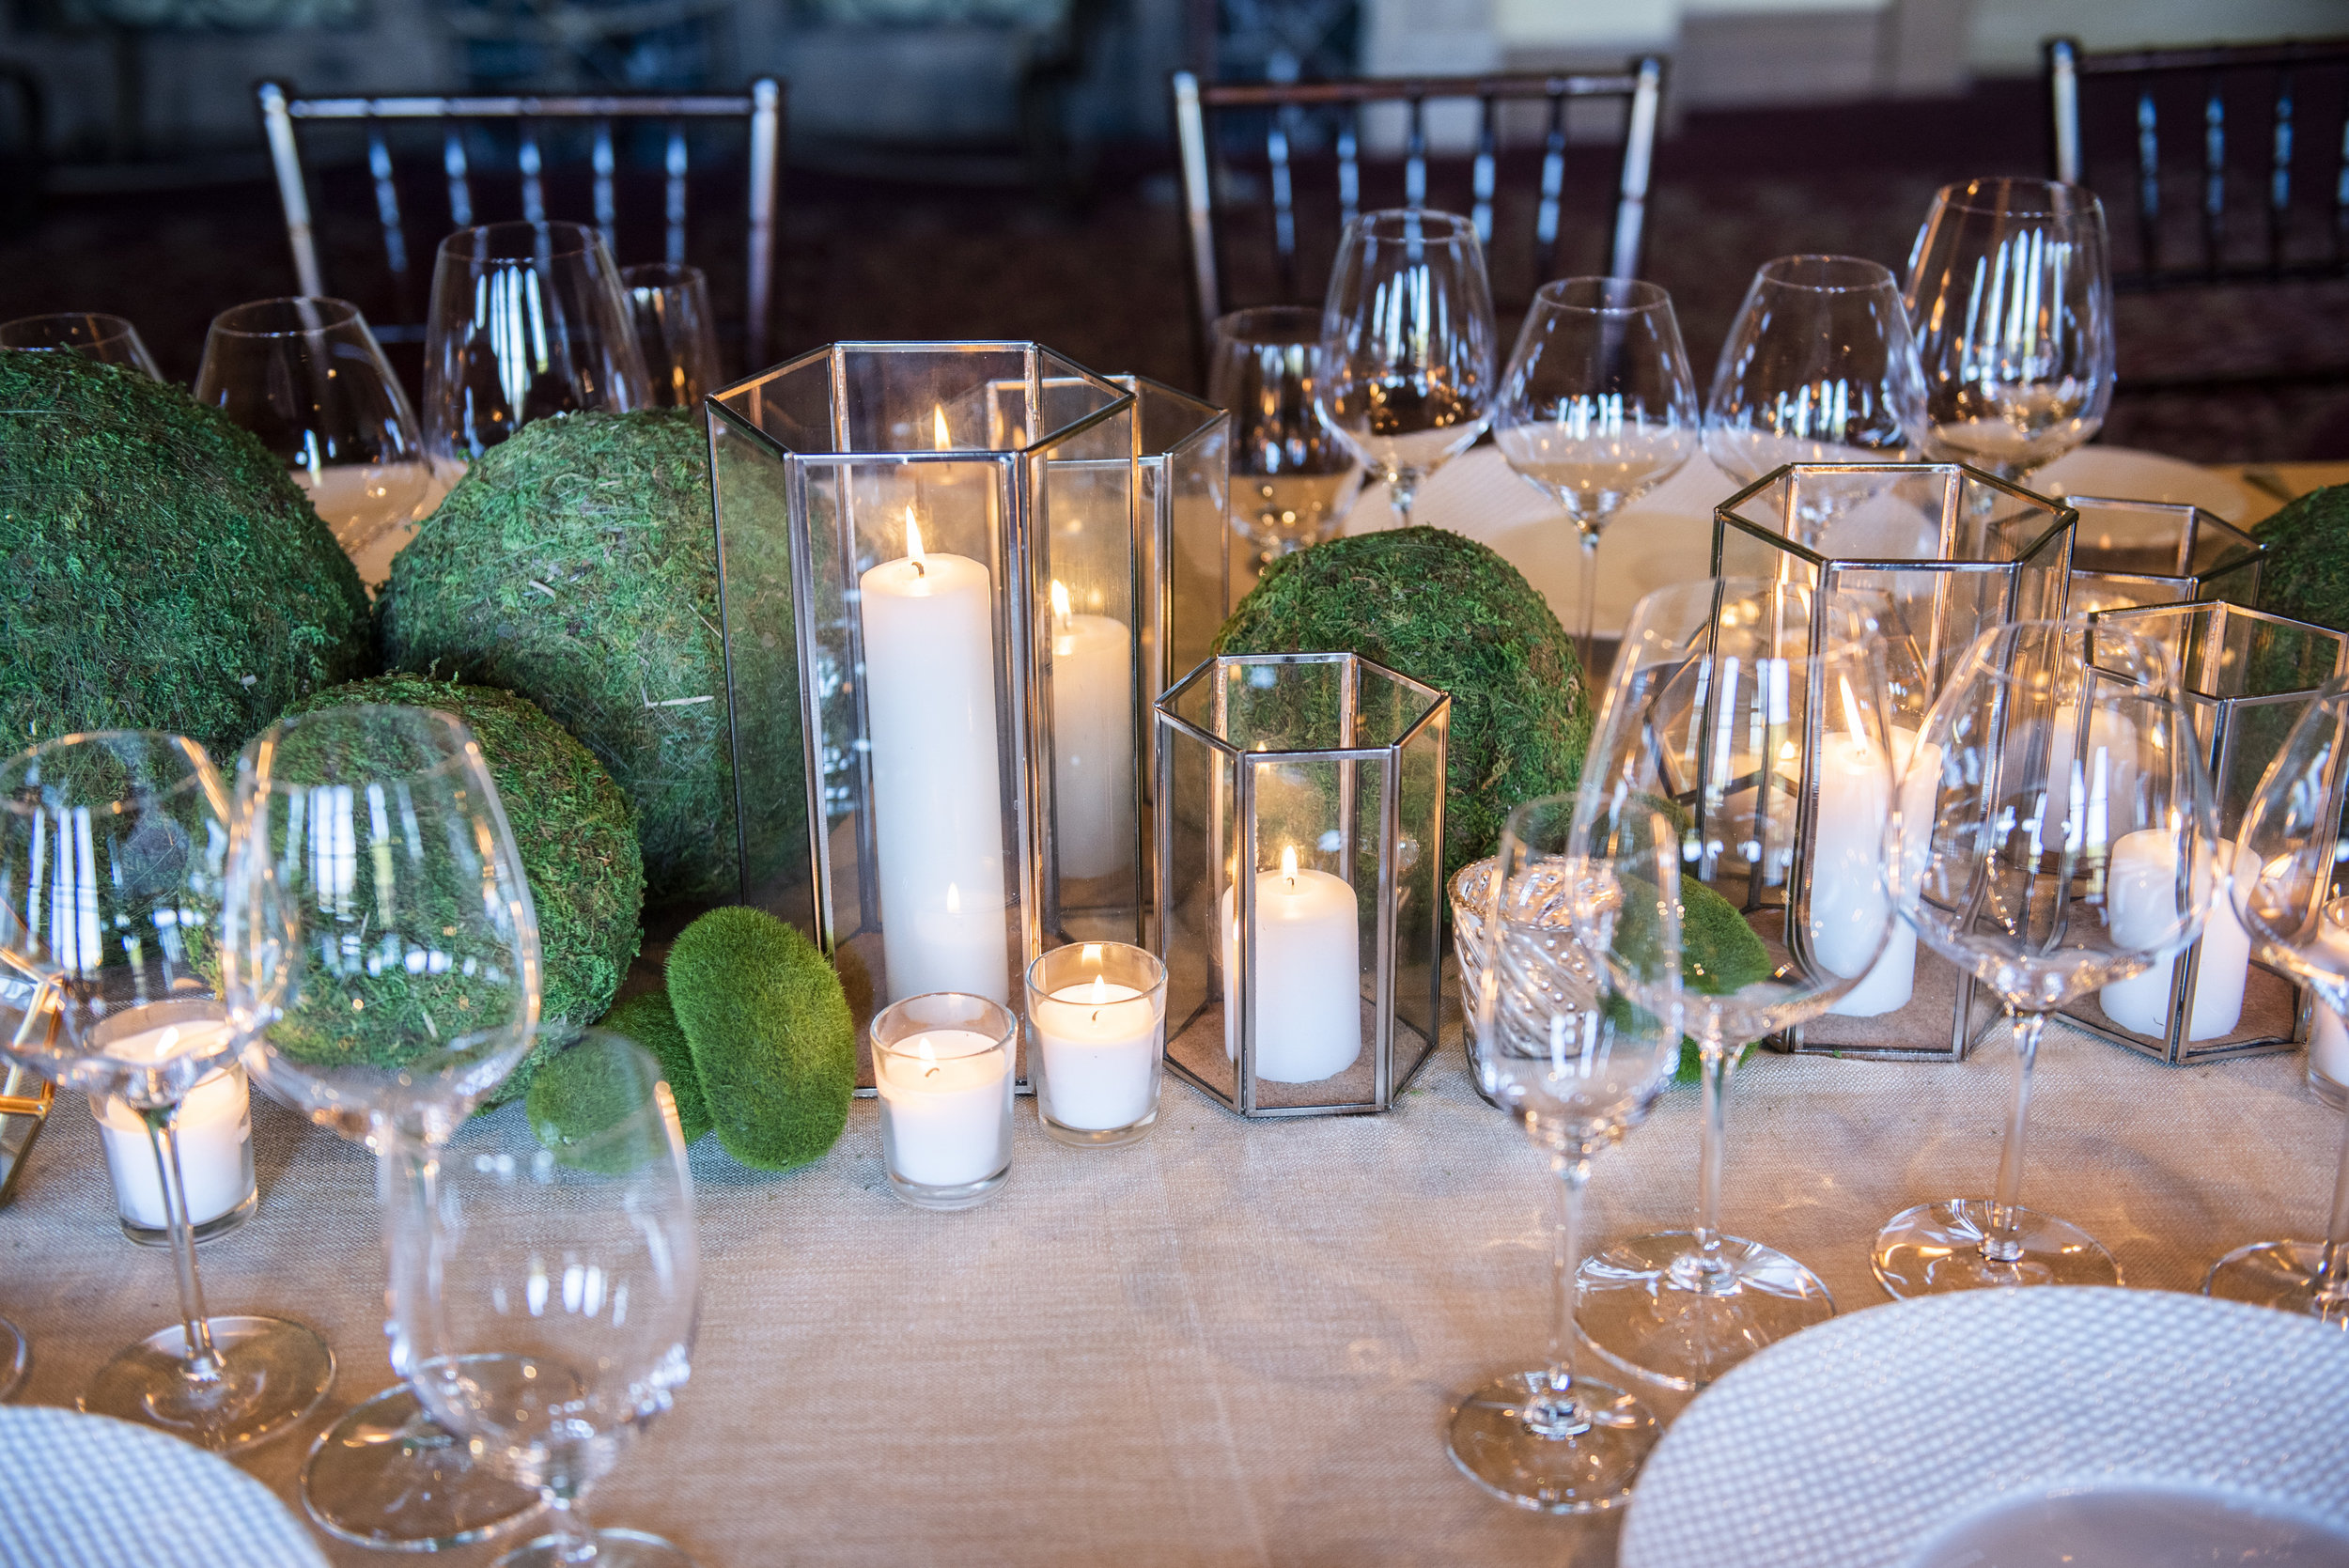 Candles and greenery.  The Addison at The Fairmont Grand Del Mar. Photo by Boyd Harris.